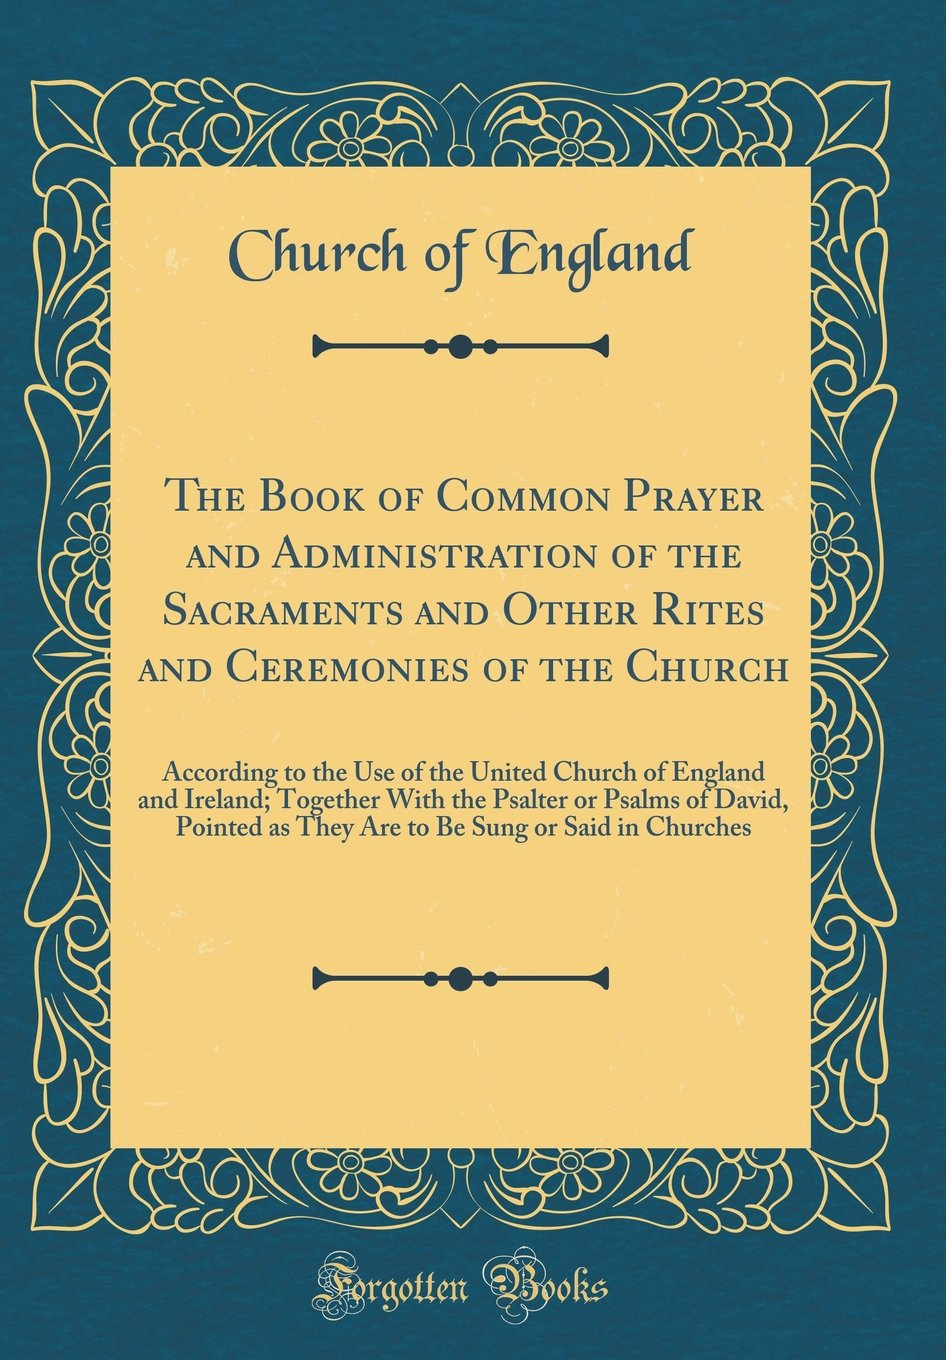 Download The Book of Common Prayer and Administration of the Sacraments and Other Rites and Ceremonies of the Church: According to the Use of the United Church ... of David, Pointed as They Are to Be Sung or ebook